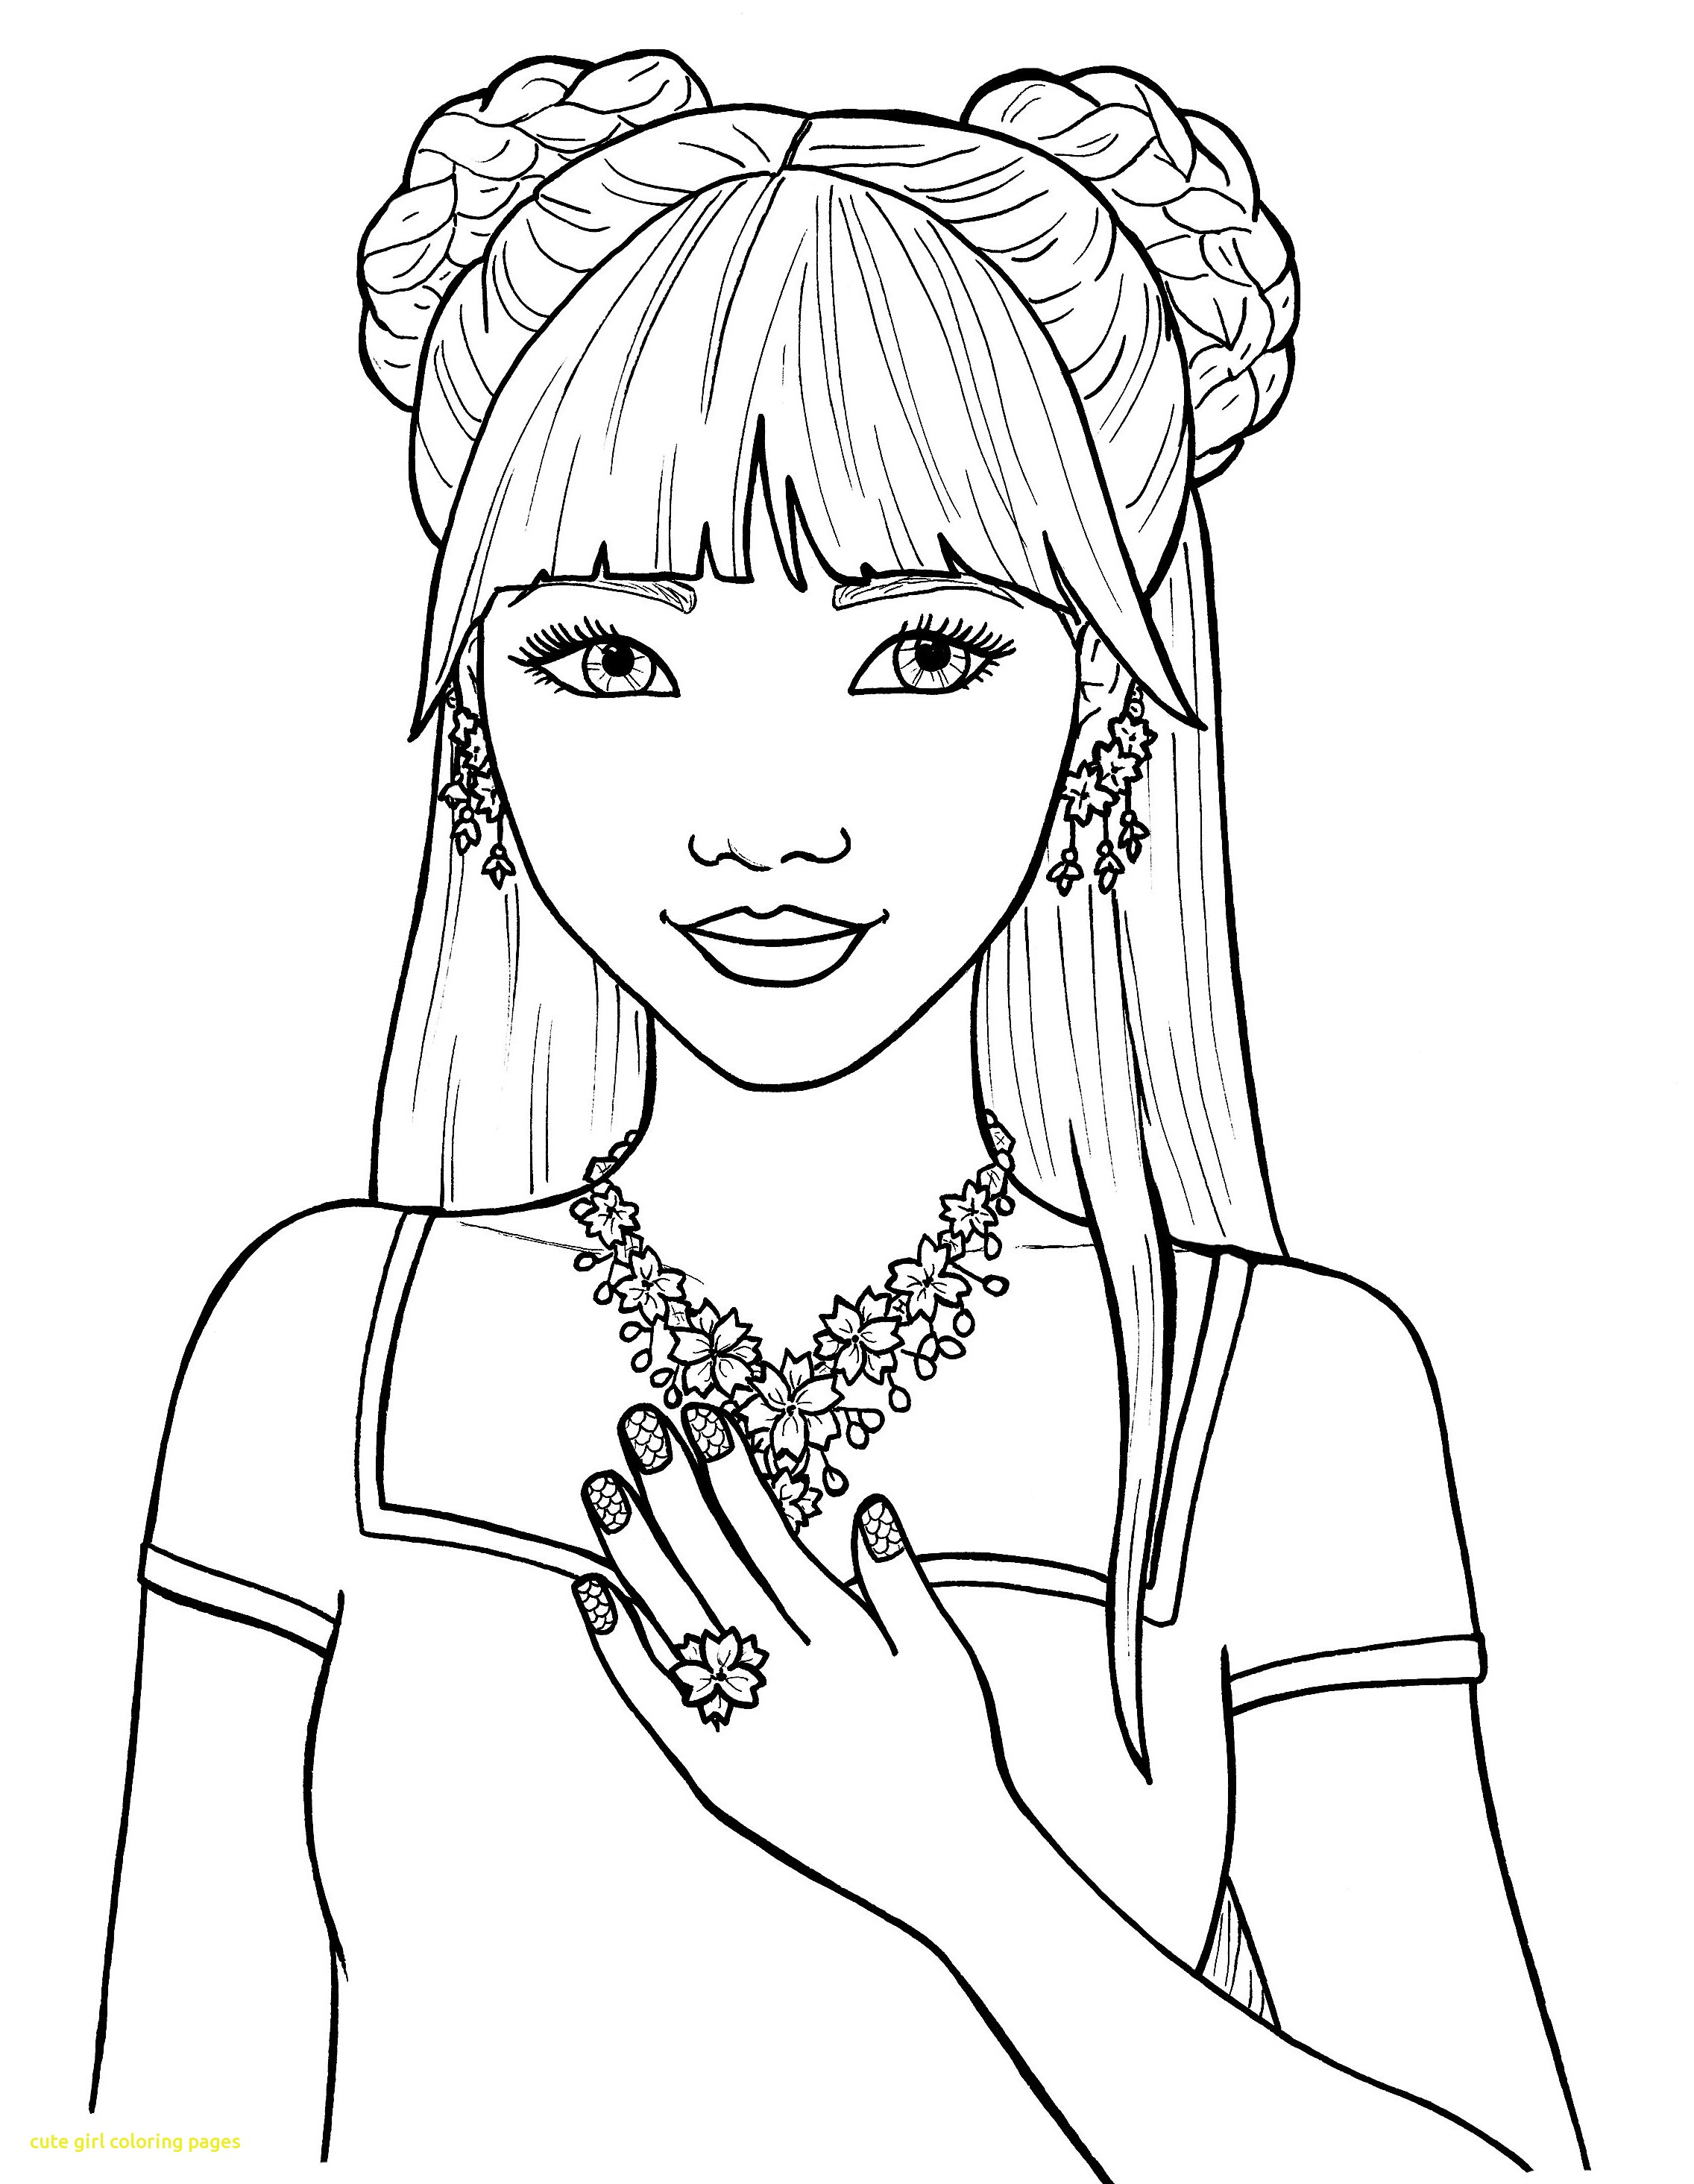 coloring pages to color online coloring pages for girls best coloring pages for kids online coloring pages to color